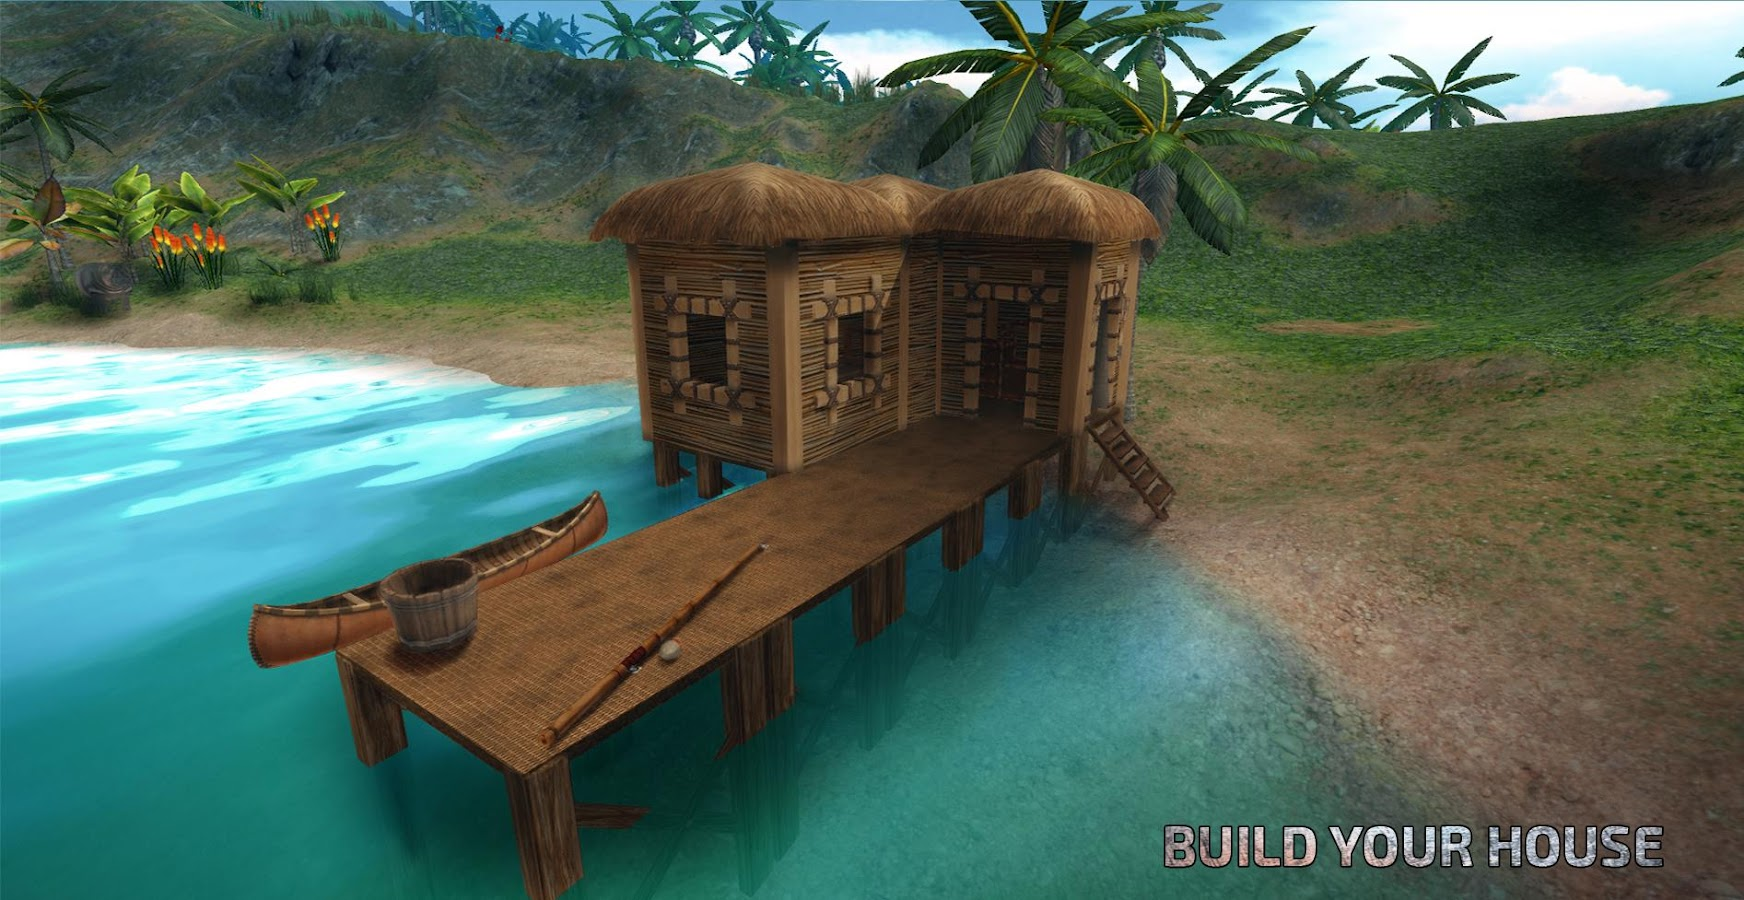 Survival Island Evolve Survivor Building Home Android Apps On Google Play: create a house game